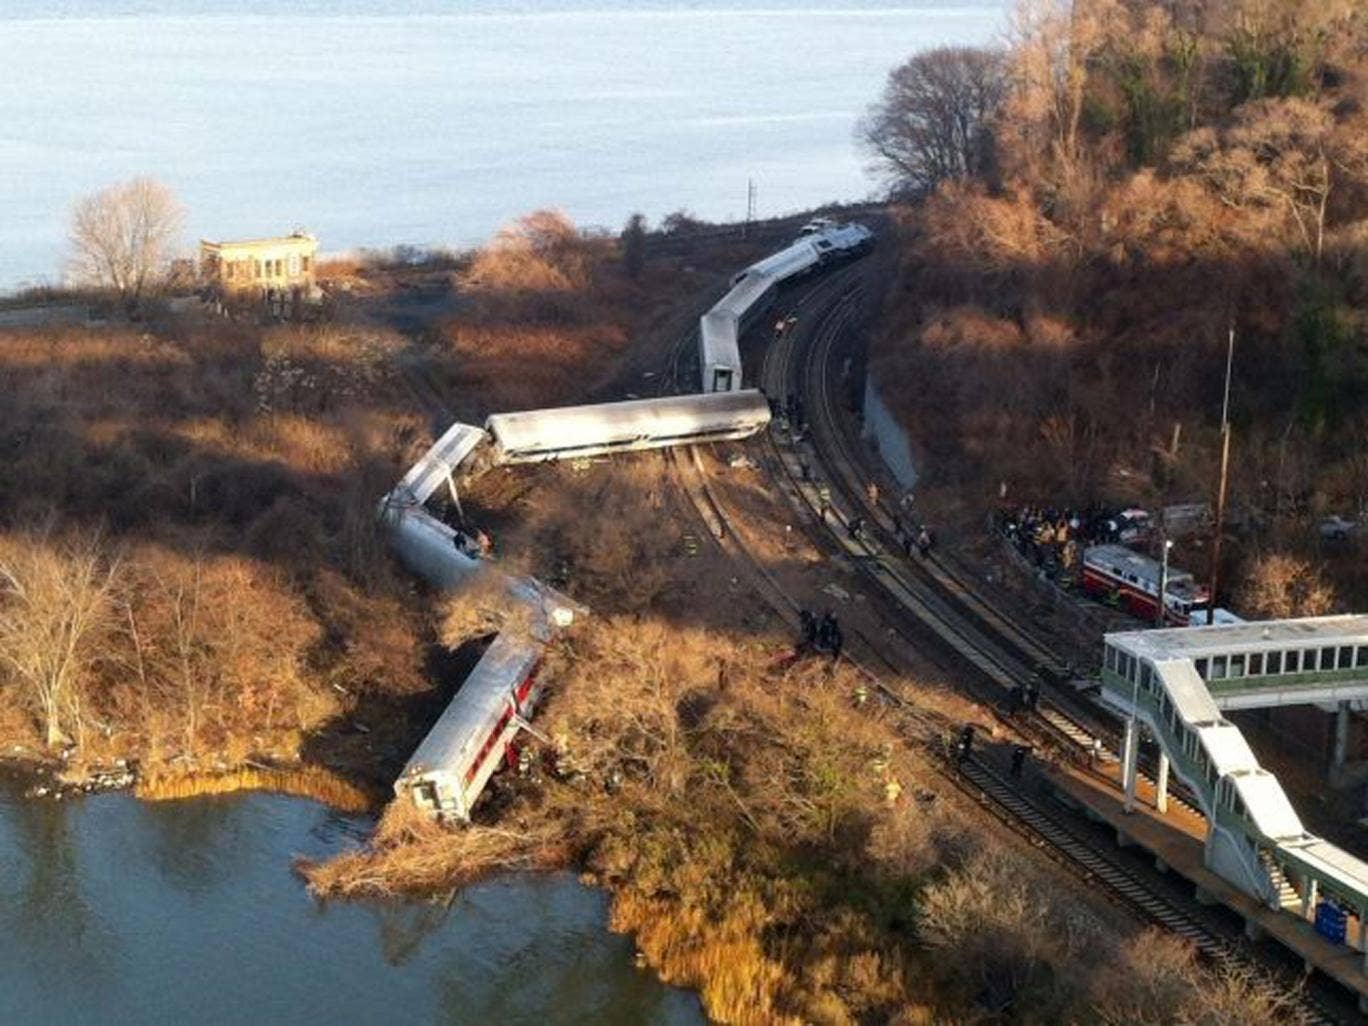 Cars from a Metro-North passenger train are scattered after the train derailed in the Bronx neighborhood of New York